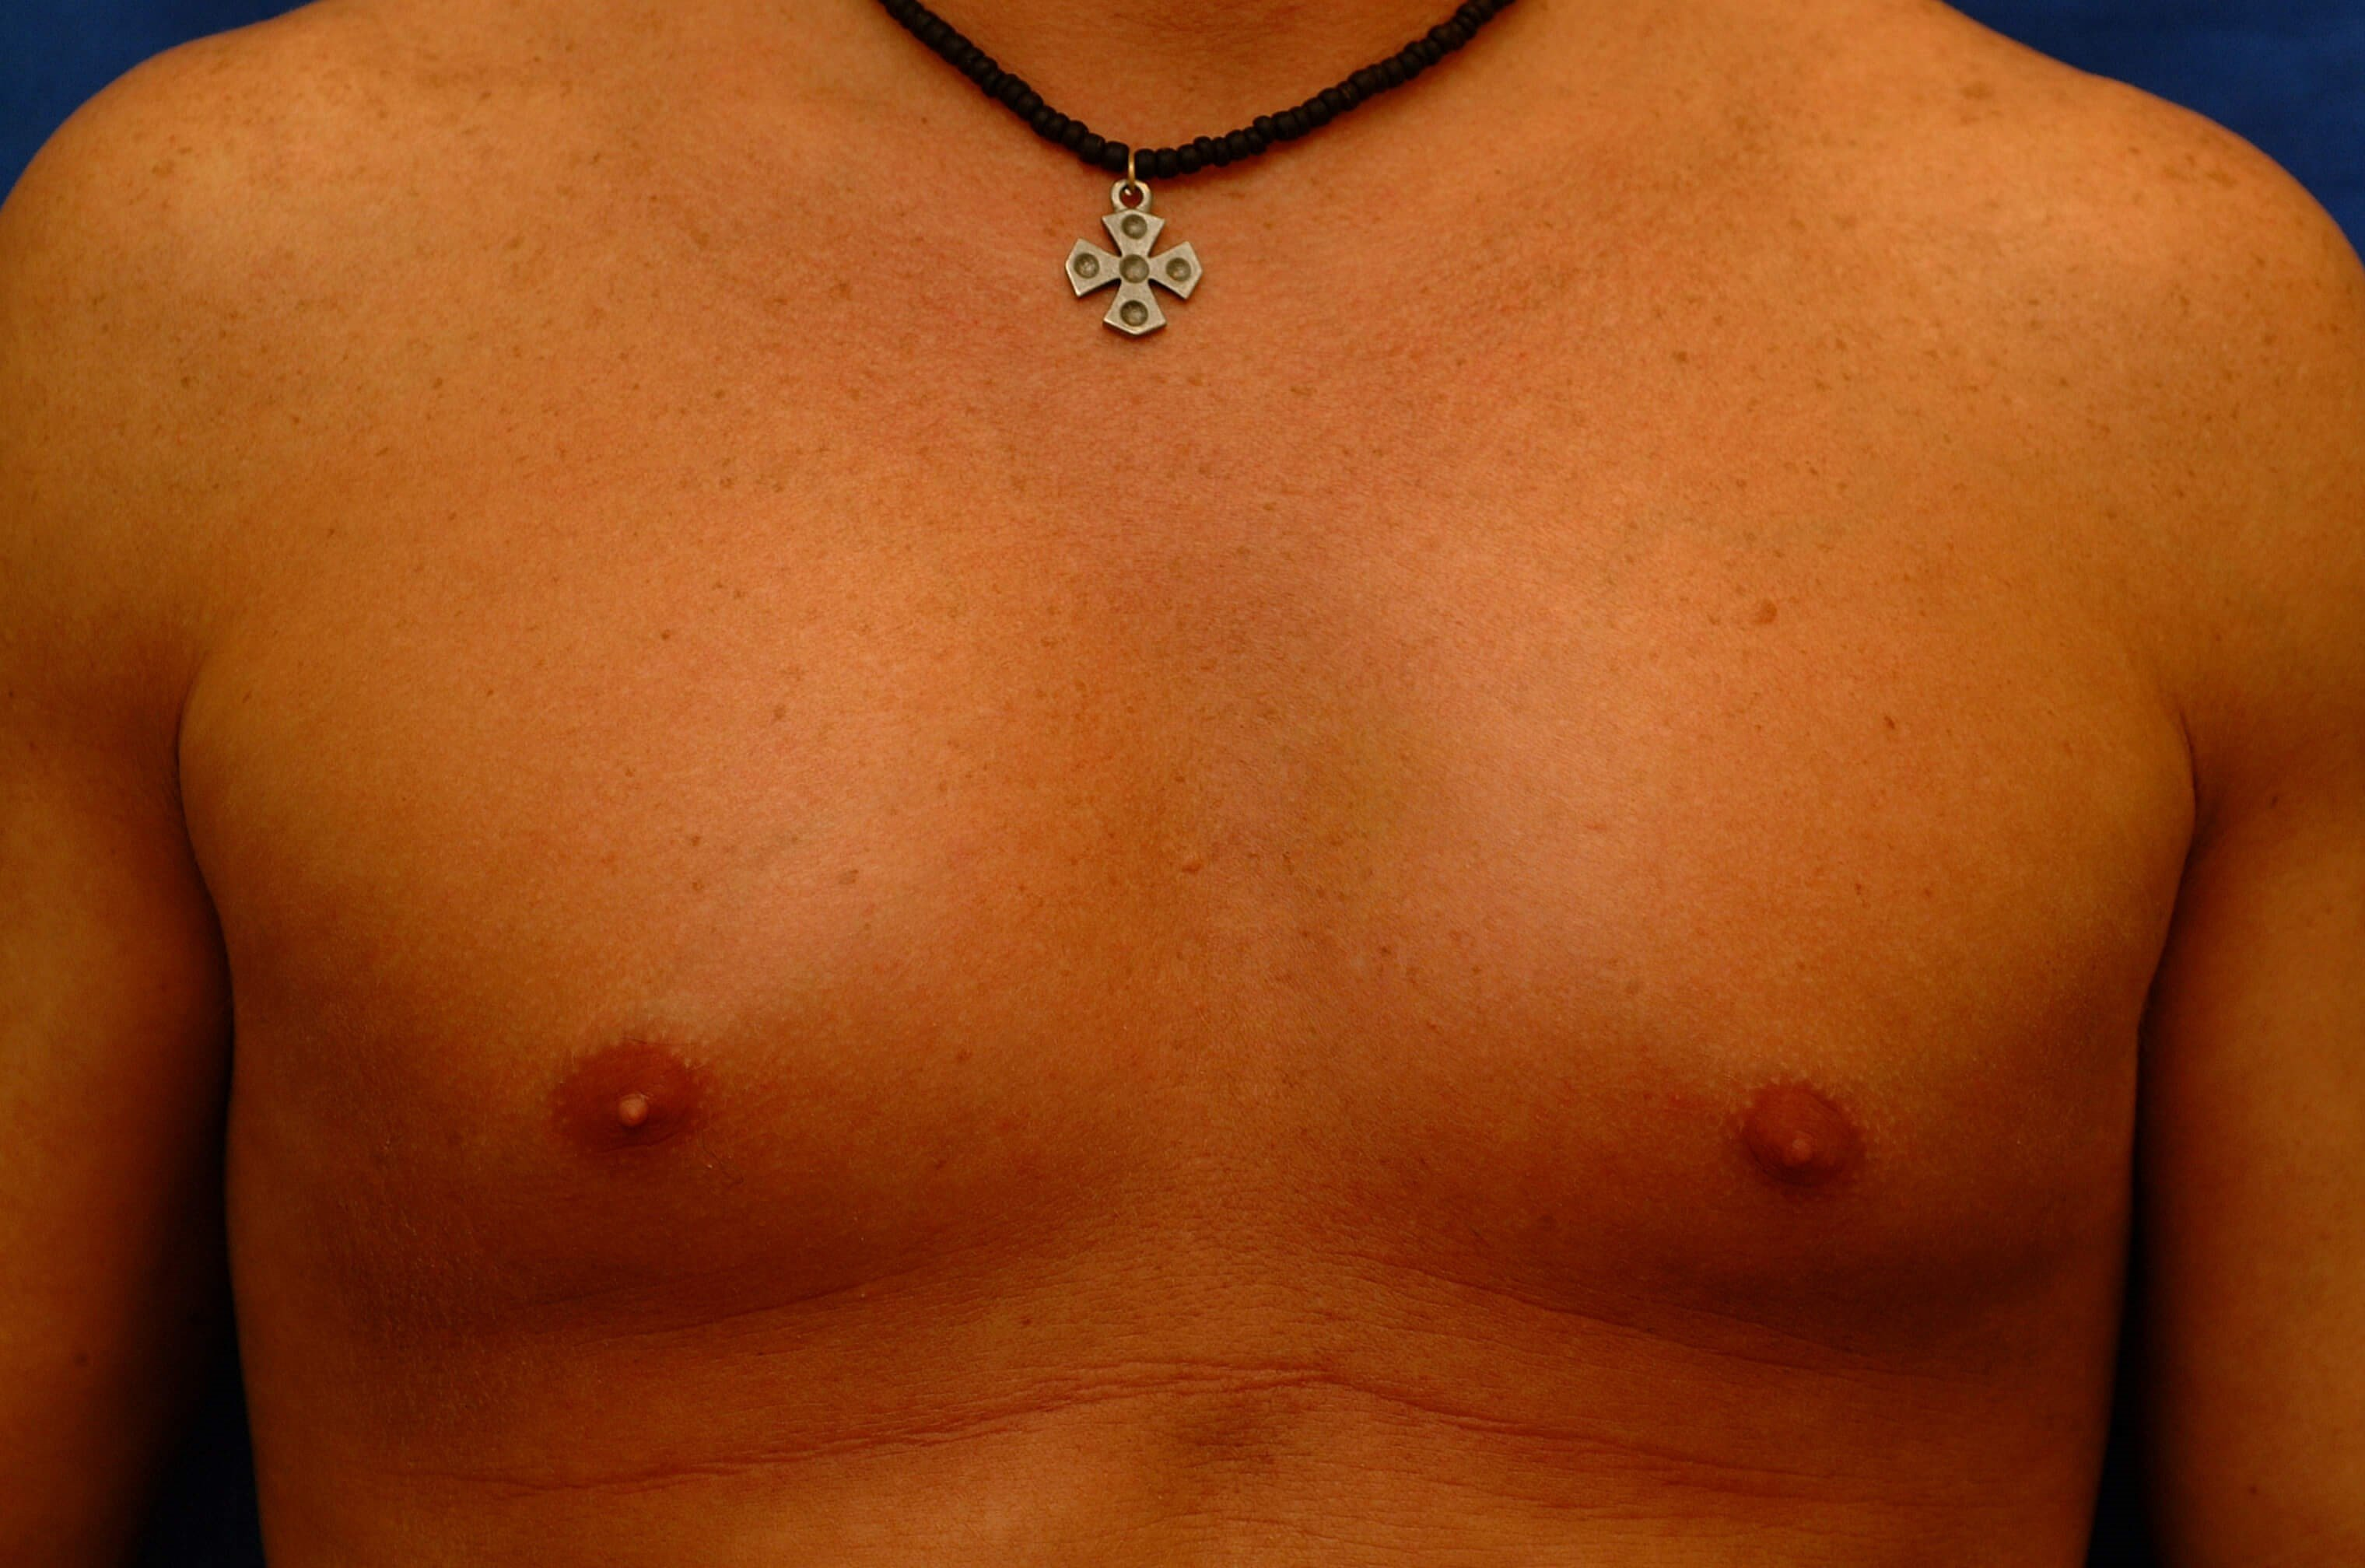 Newport Beach Pectoral Implant After Front View